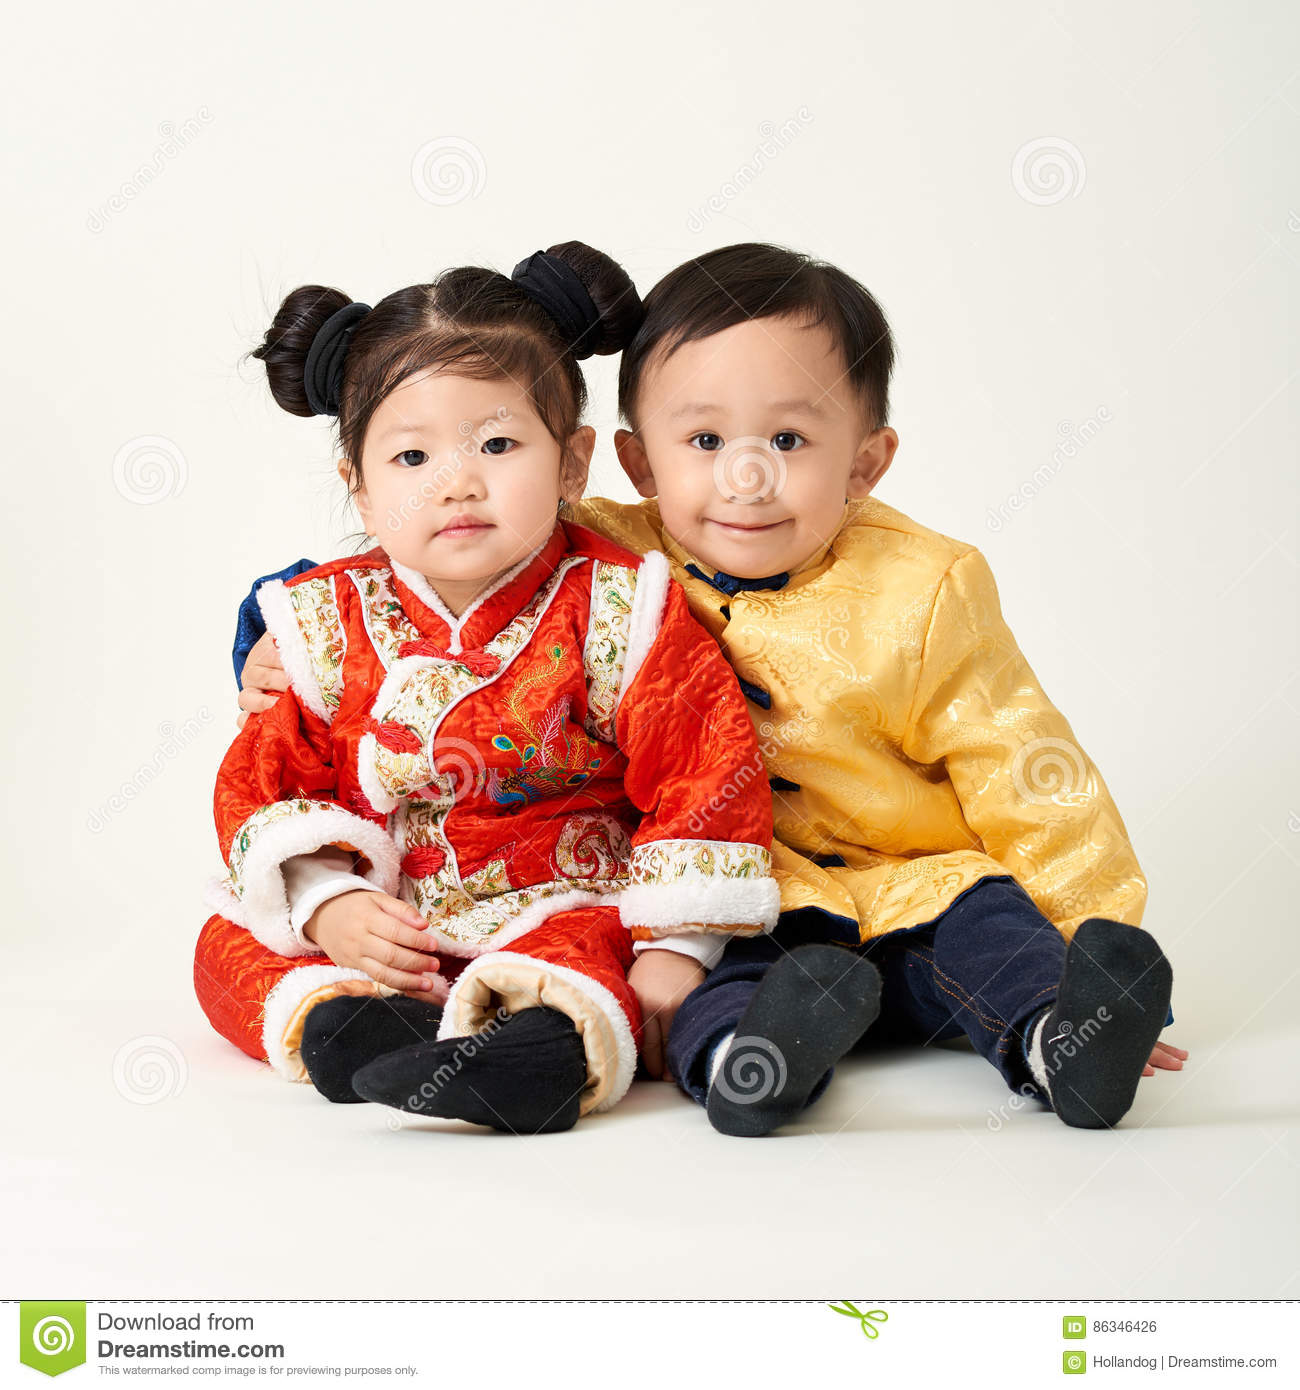 ee3b13aec Chinese Baby Boy And Girl In Traditional Chinese New Year Outfit ...